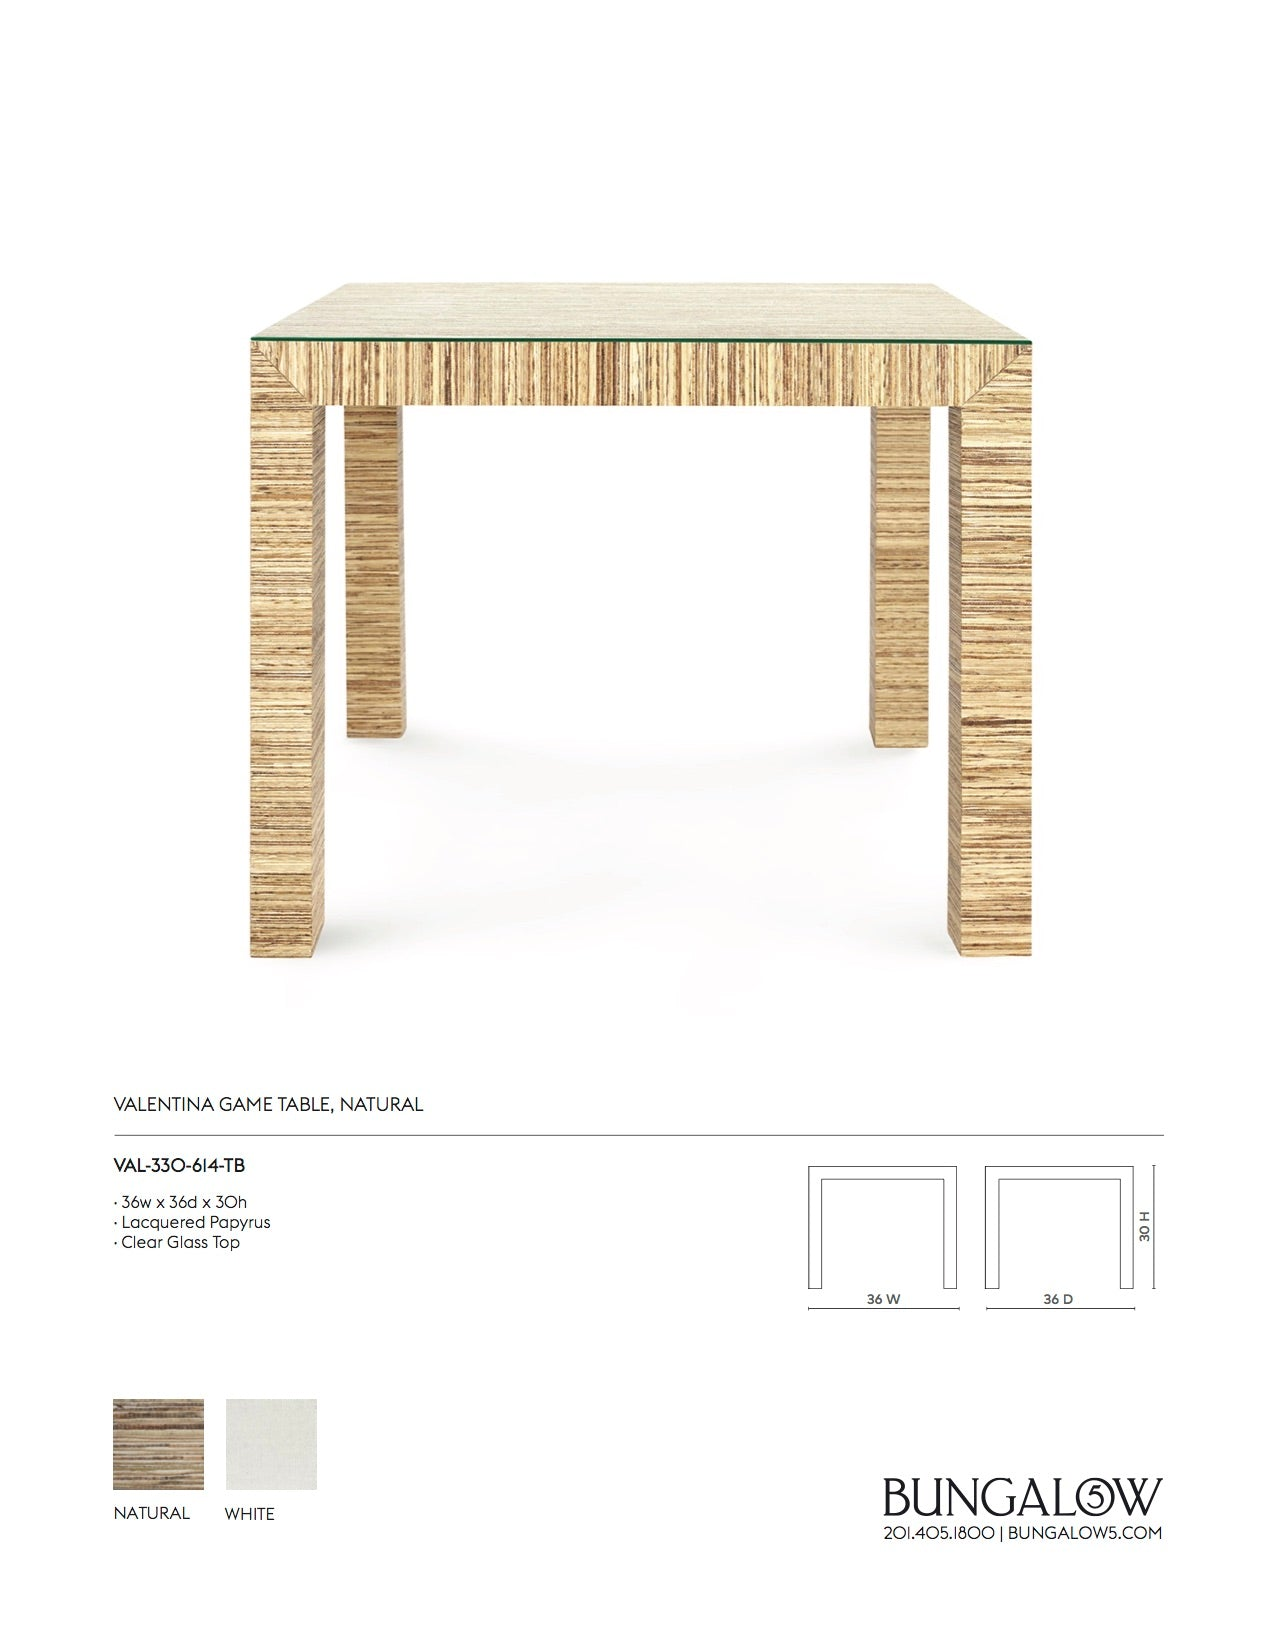 Bungalow 5 Valentina Papyrus Game Table Natural Tearsheet